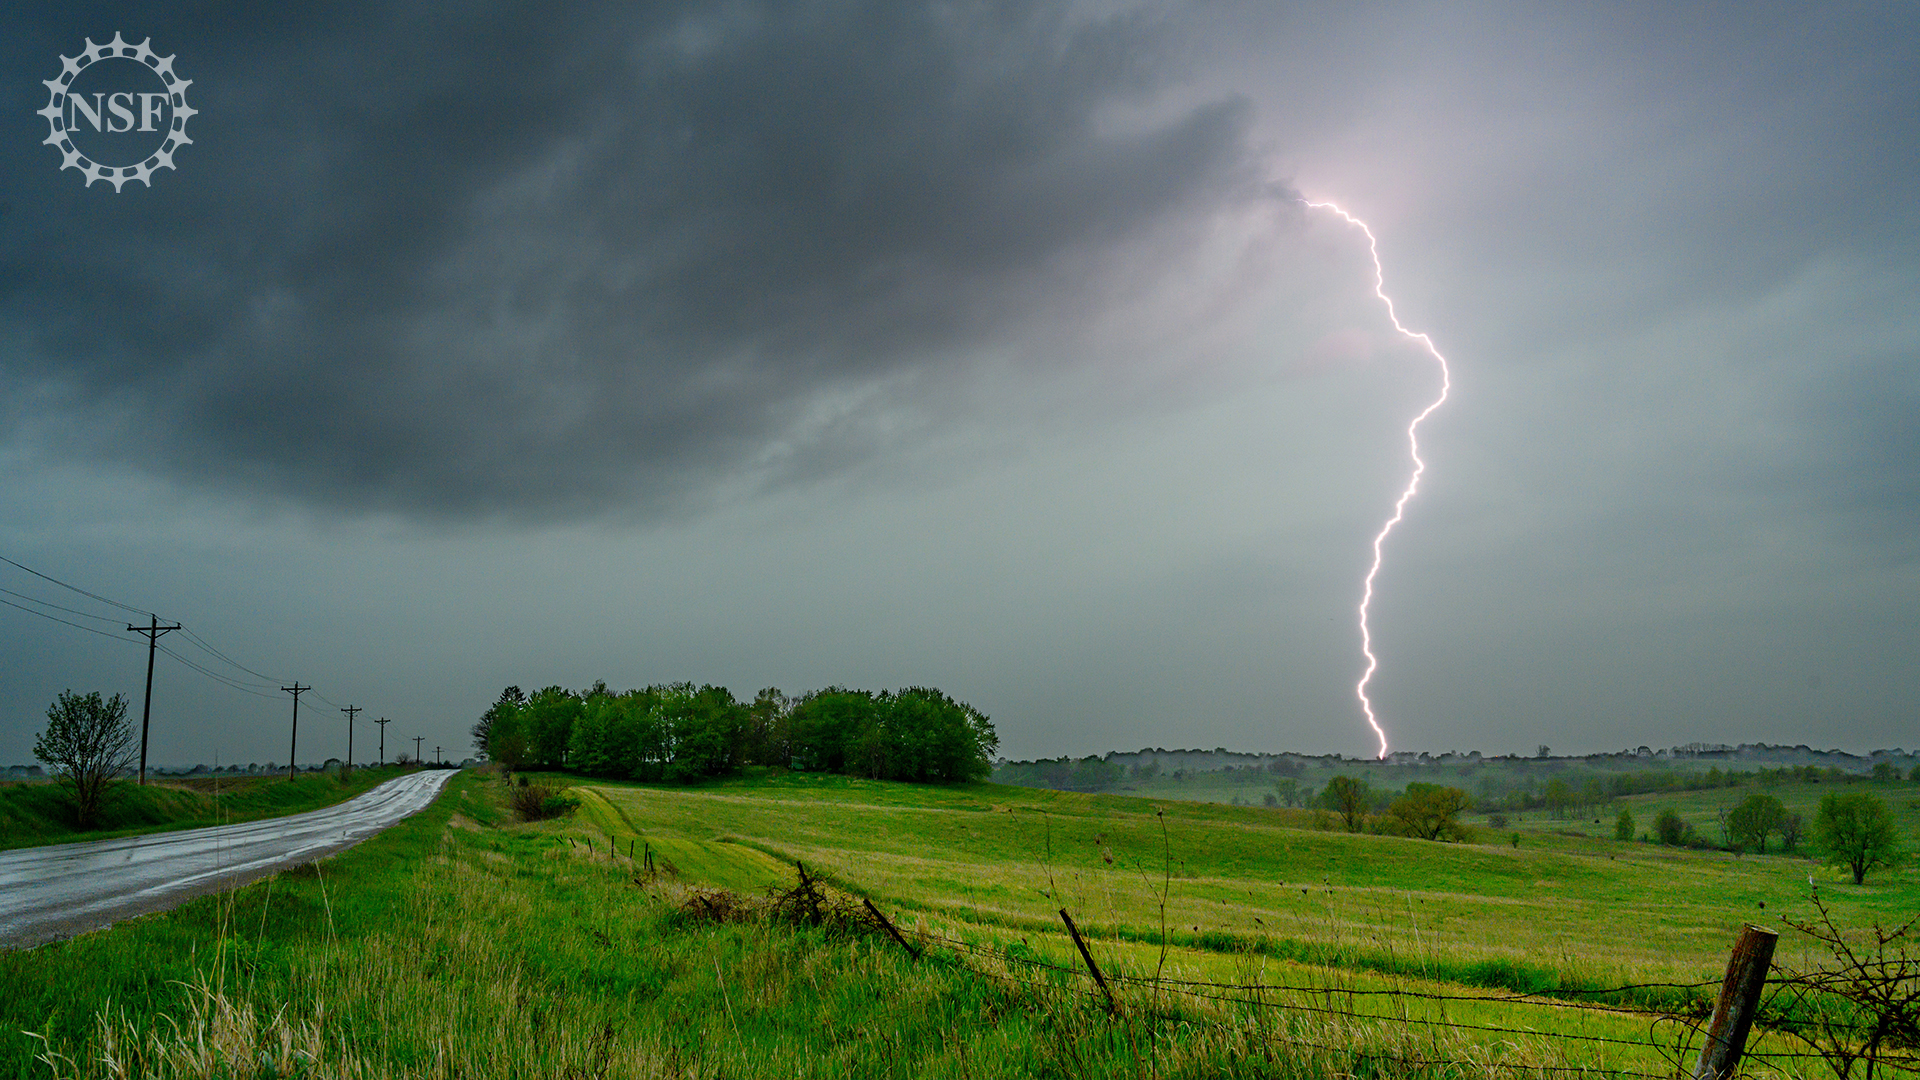 lightning strike in a field